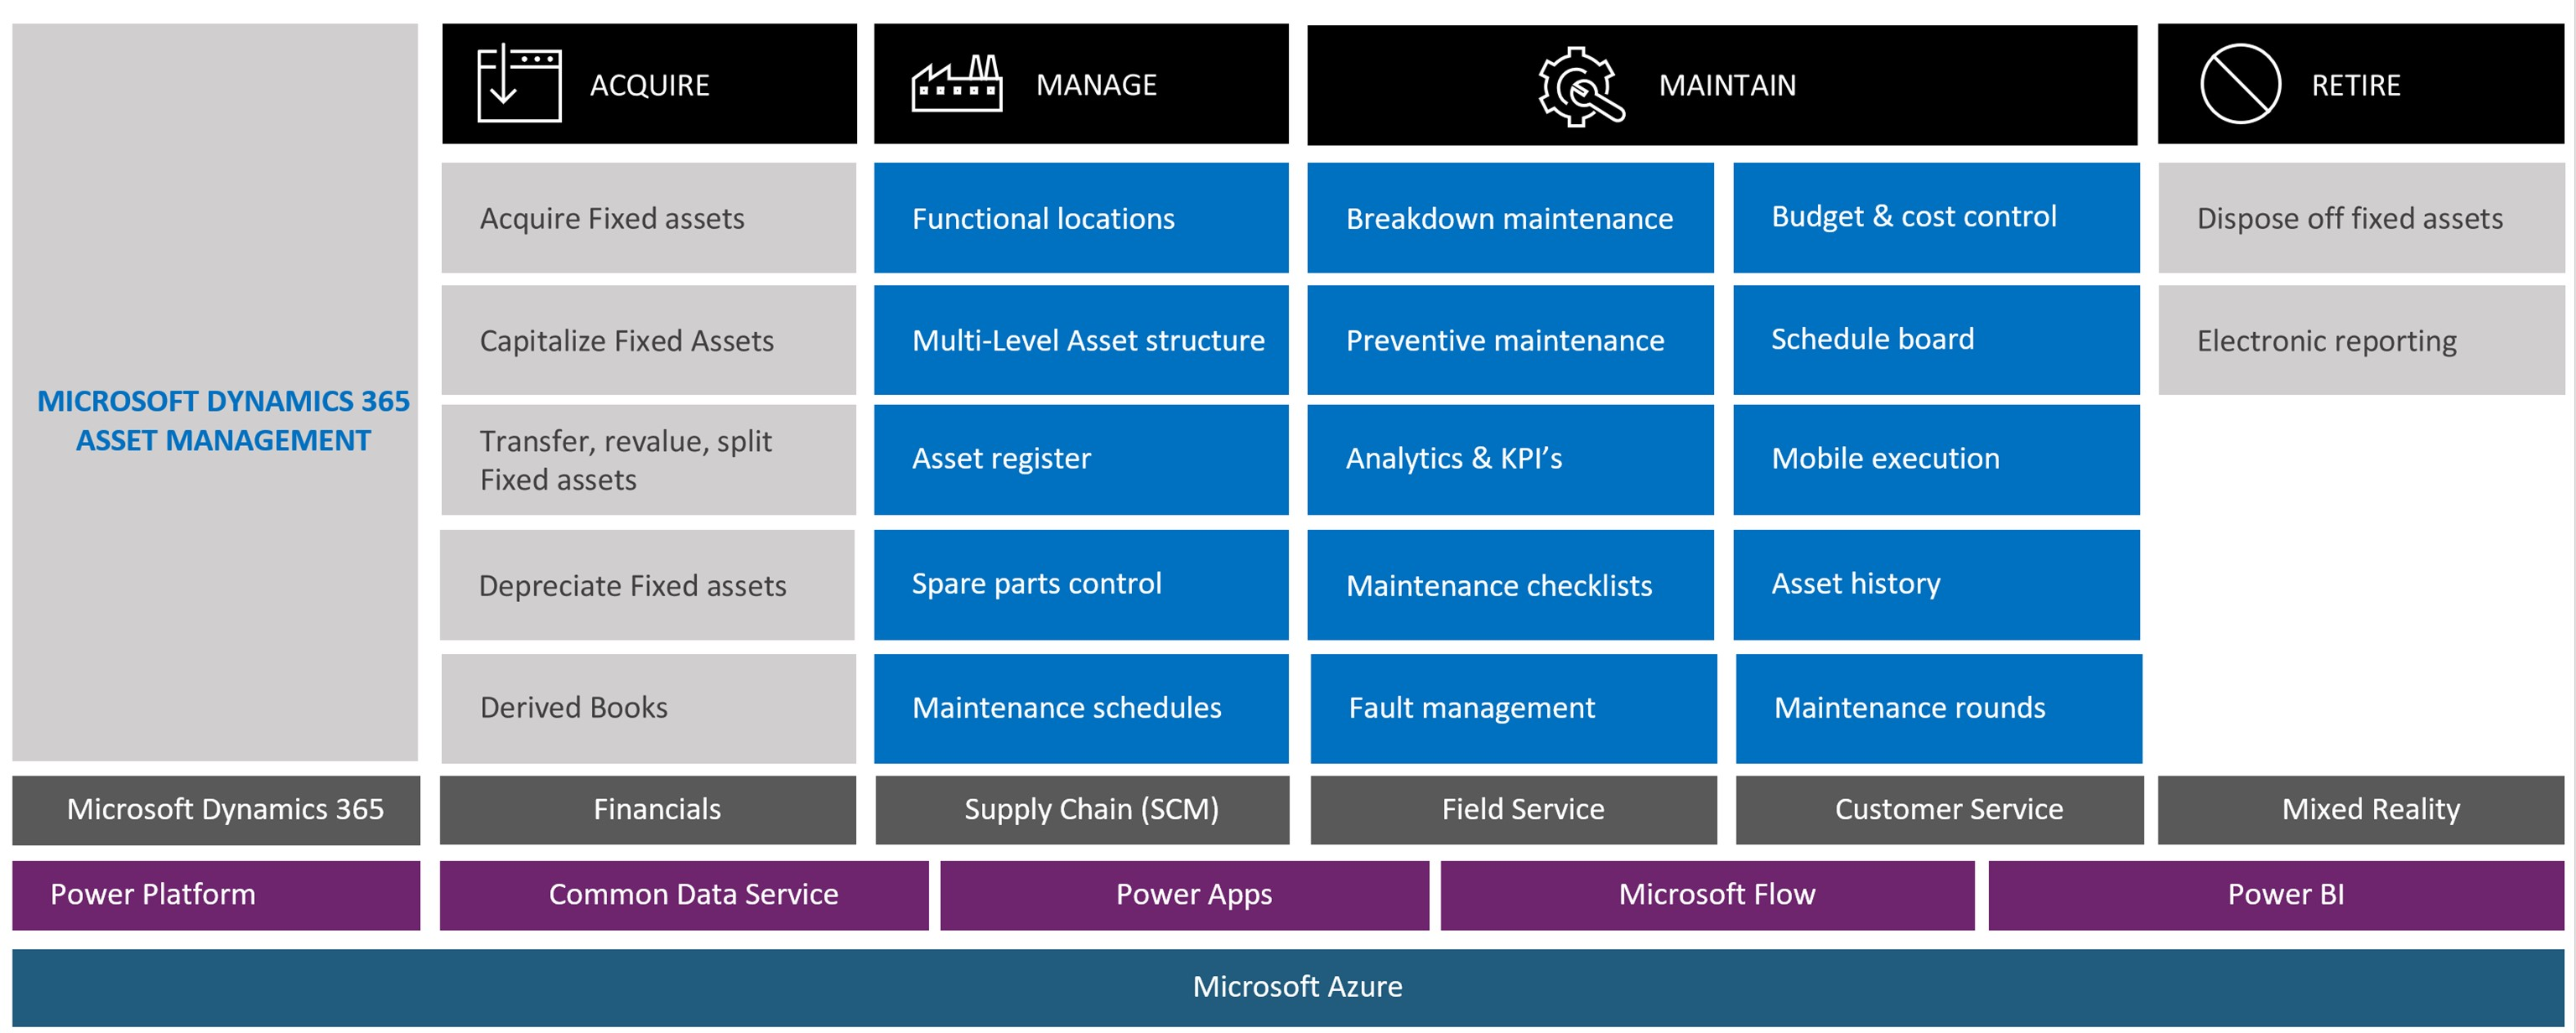 Overview of how Asset Management integrates